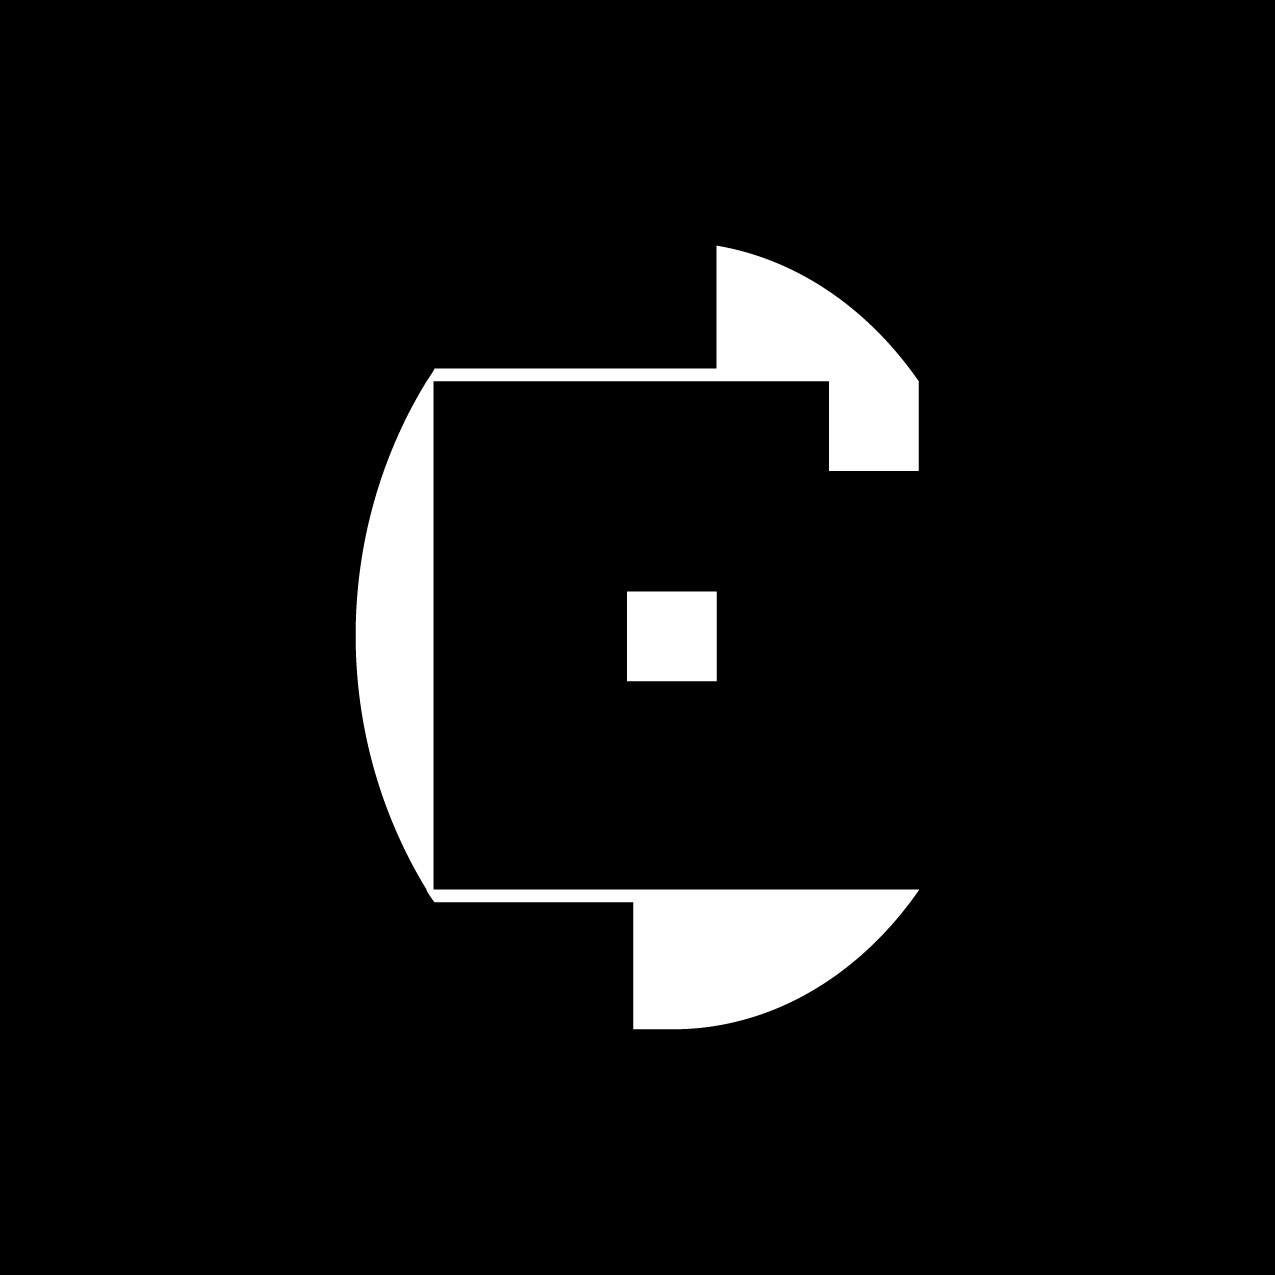 Letter C3 design by Furia